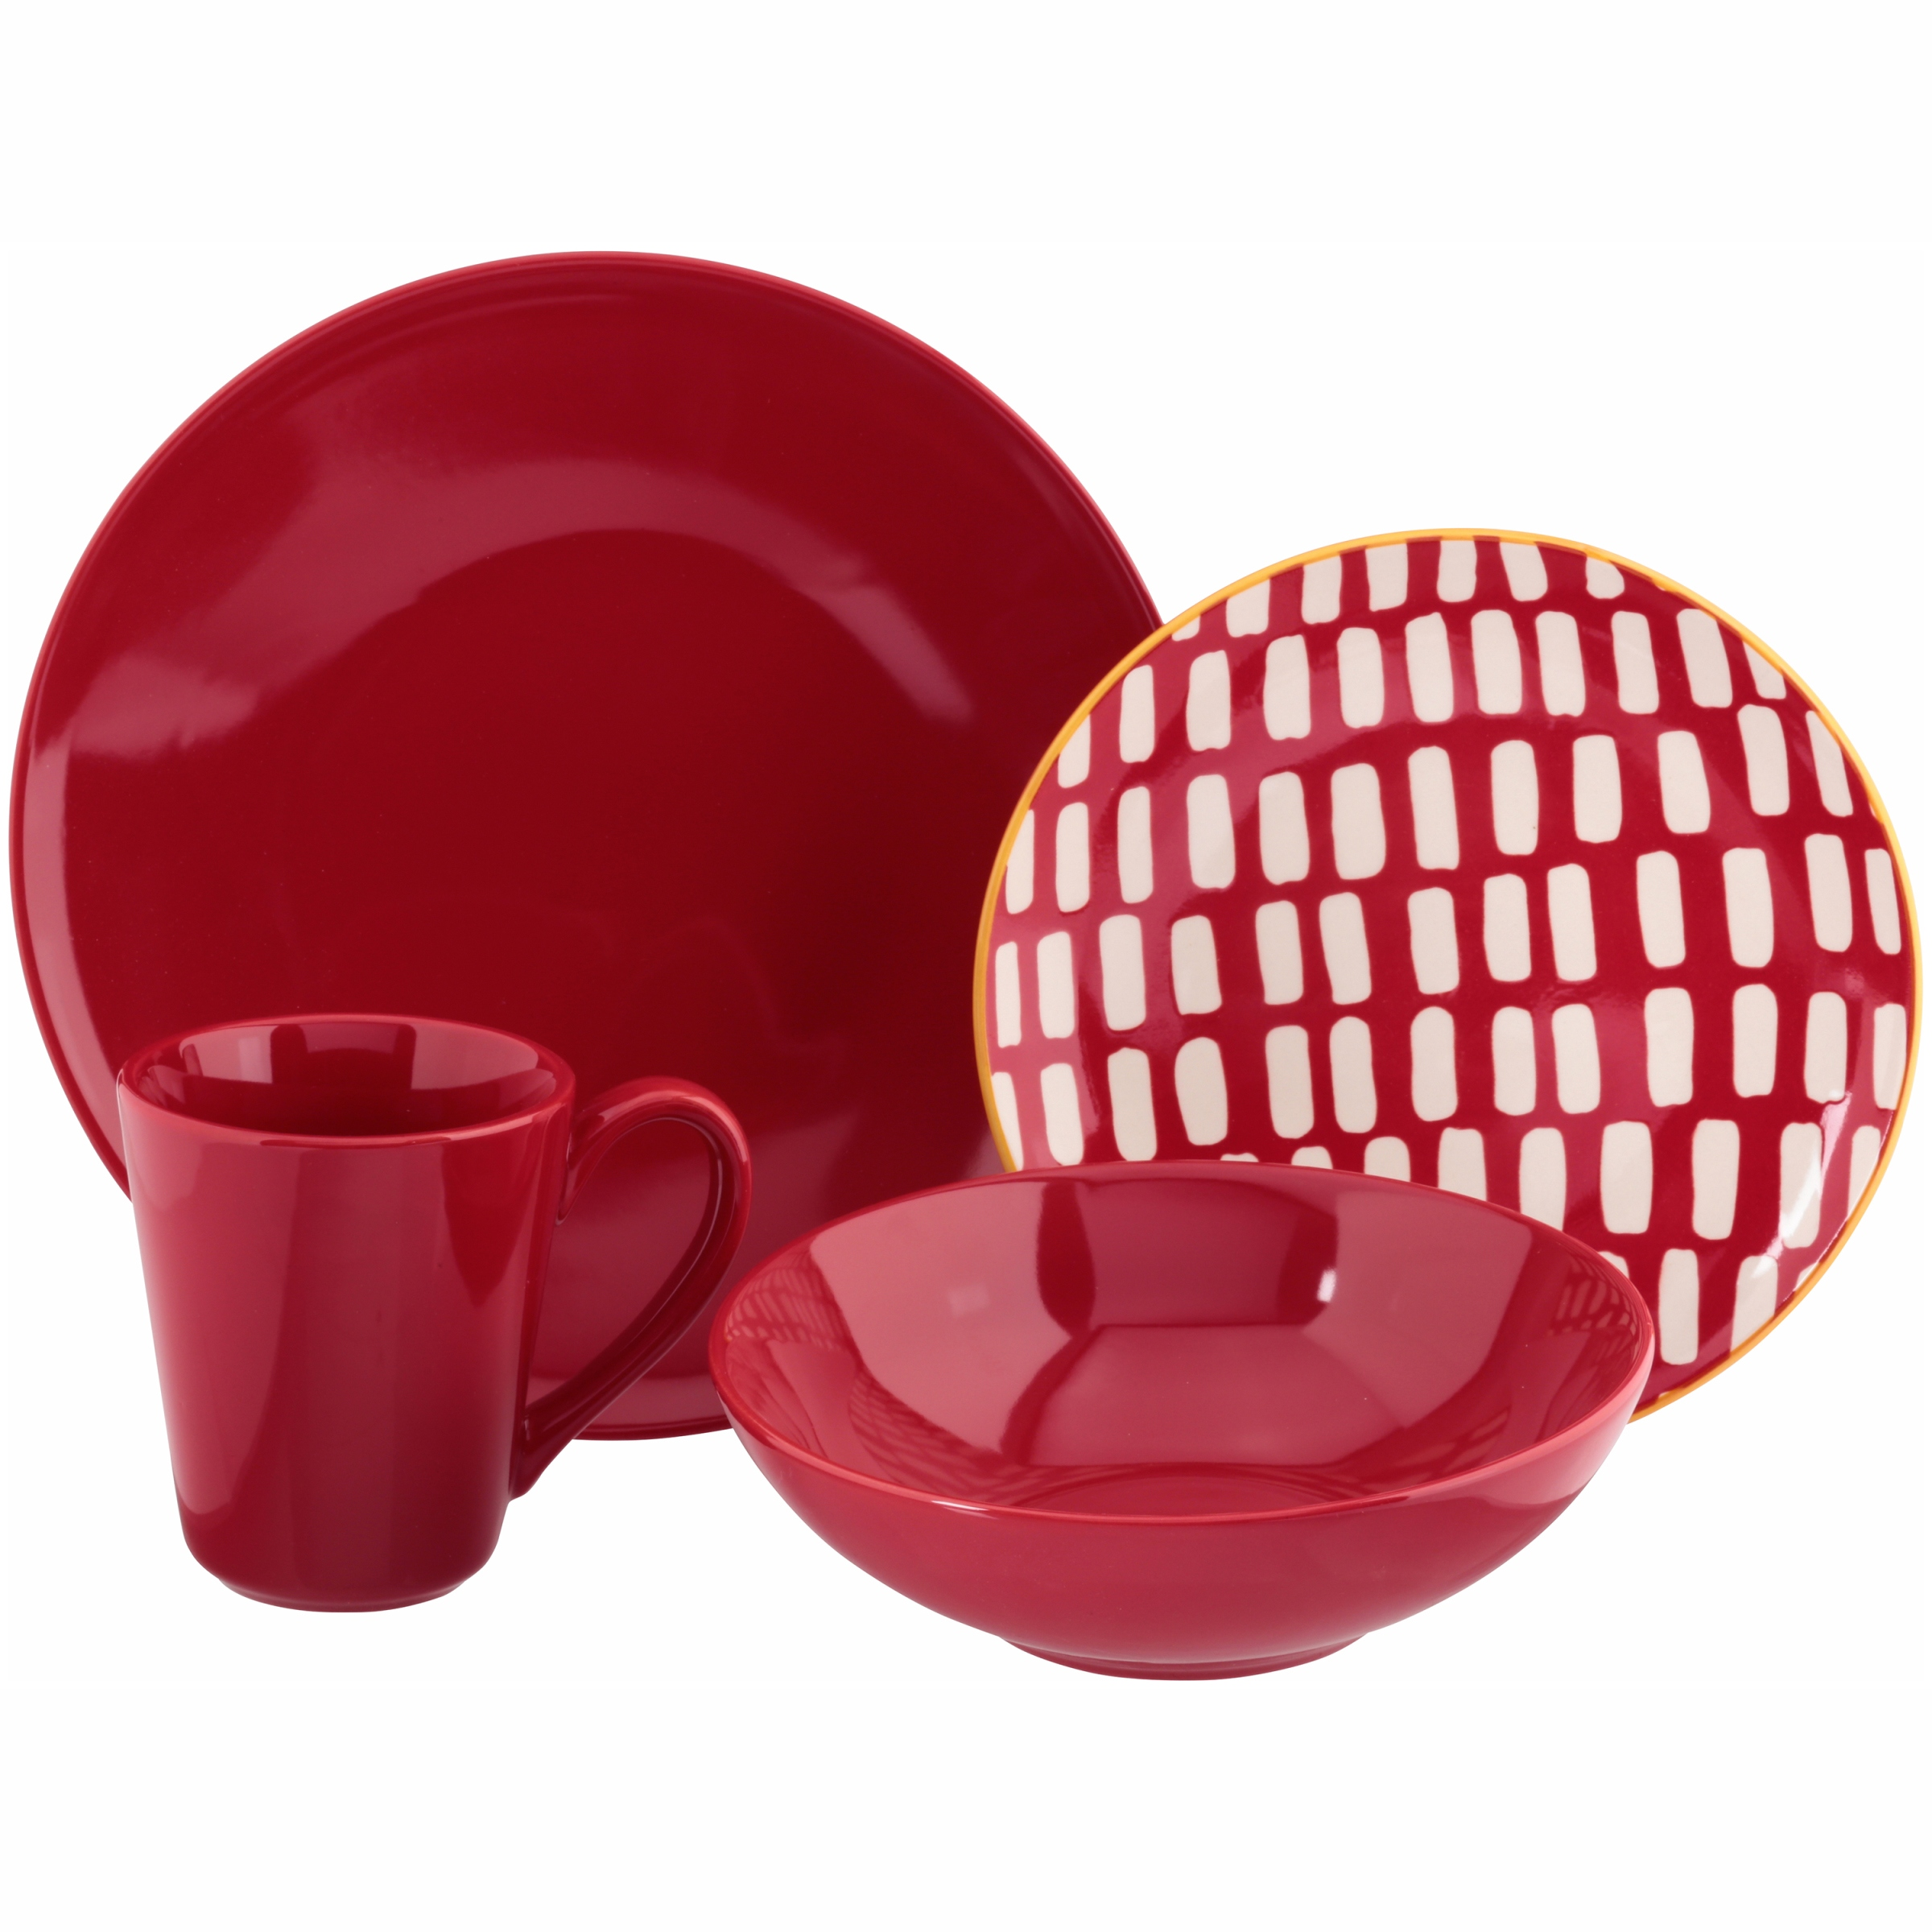 Baum Red Dashed Lines Stoneware 16-Piece Dinnerware Set  sc 1 st  Corporate Perks Lite Perks at Work & Baum Metro 3-Tone Stoneware 16-piece Dinnerware Set - Corporate ...